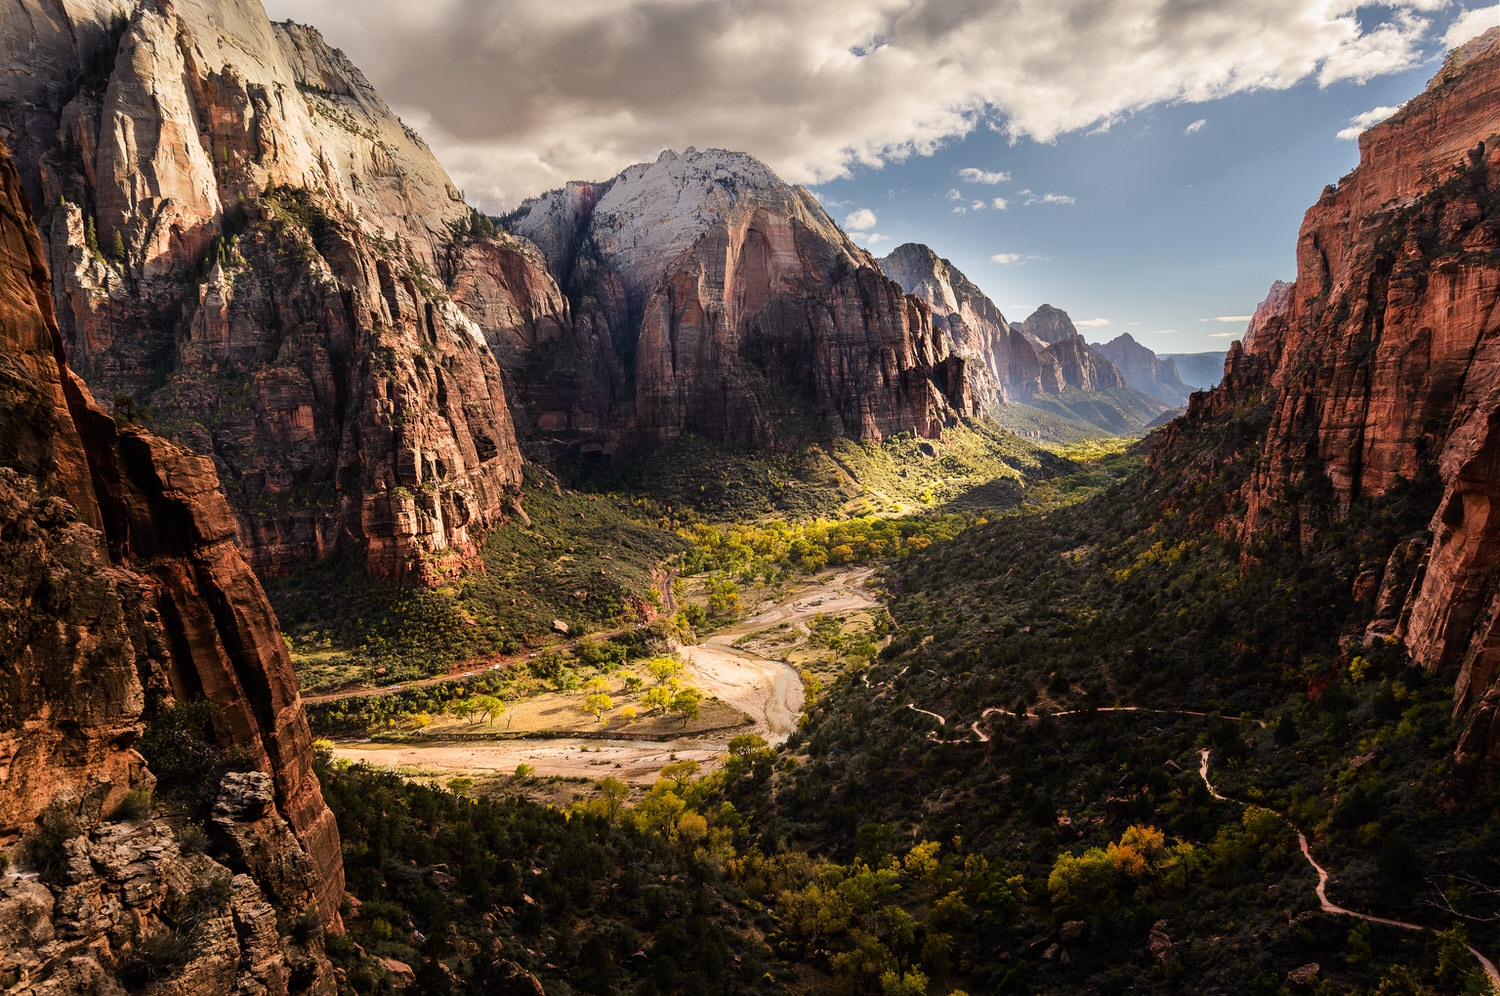 Into Zion Canyon